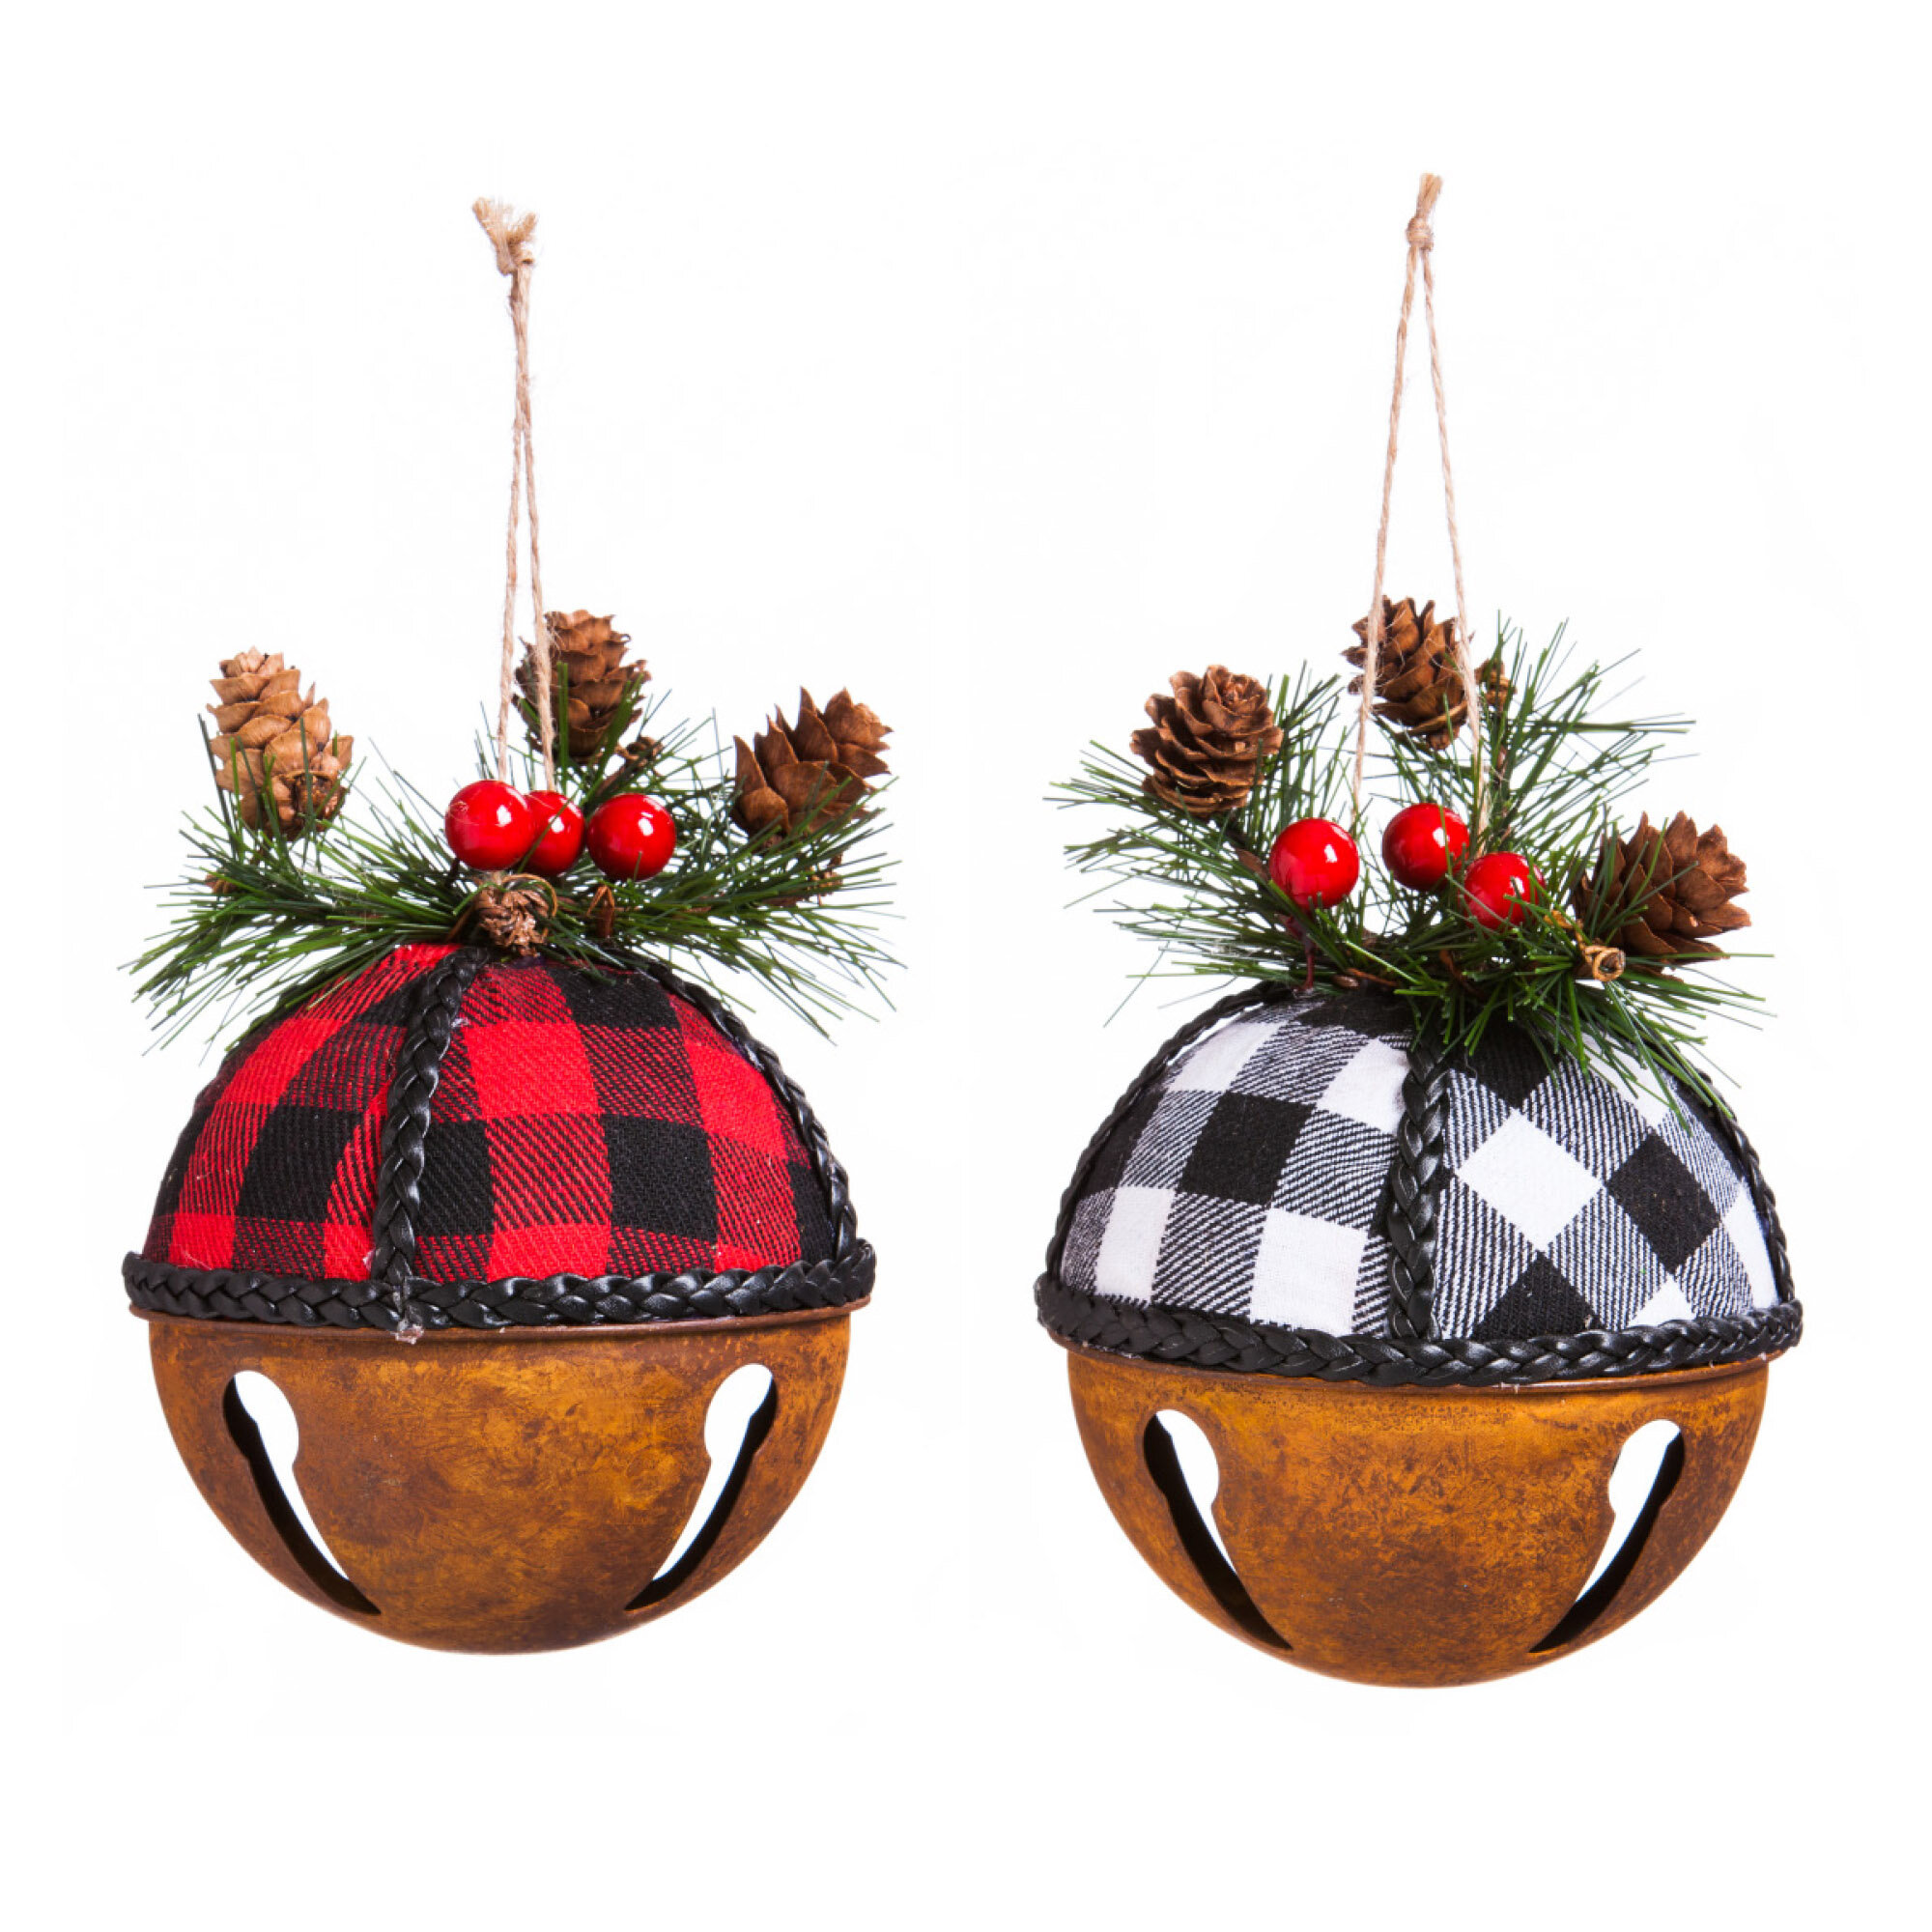 The Holiday Aisle Metal Buffalo Plaid Bell Hanging Figurine Ornament Reviews Wayfair